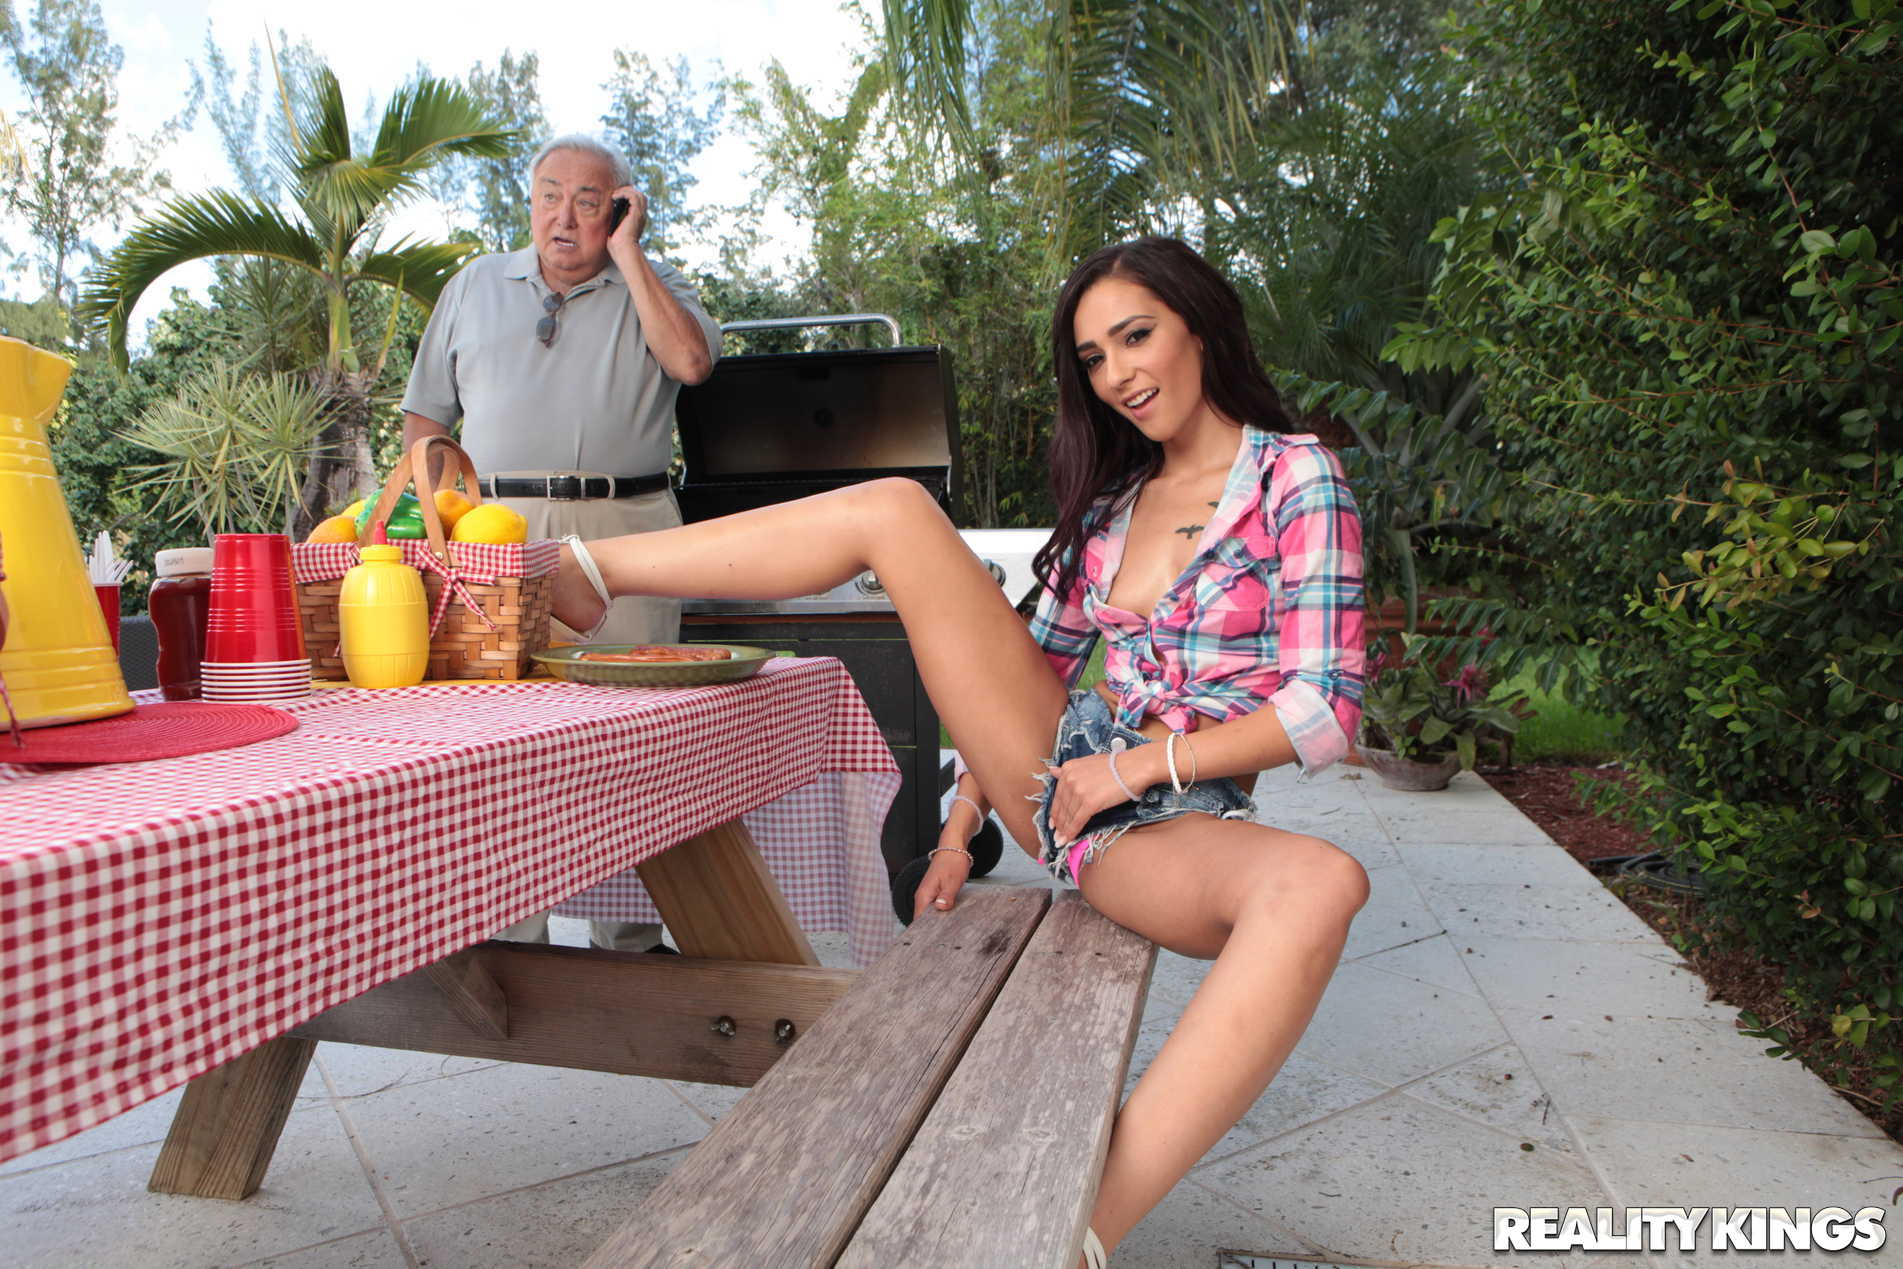 Reality Kings 'Park Bench' starring Jaye Summers (Photo 96)